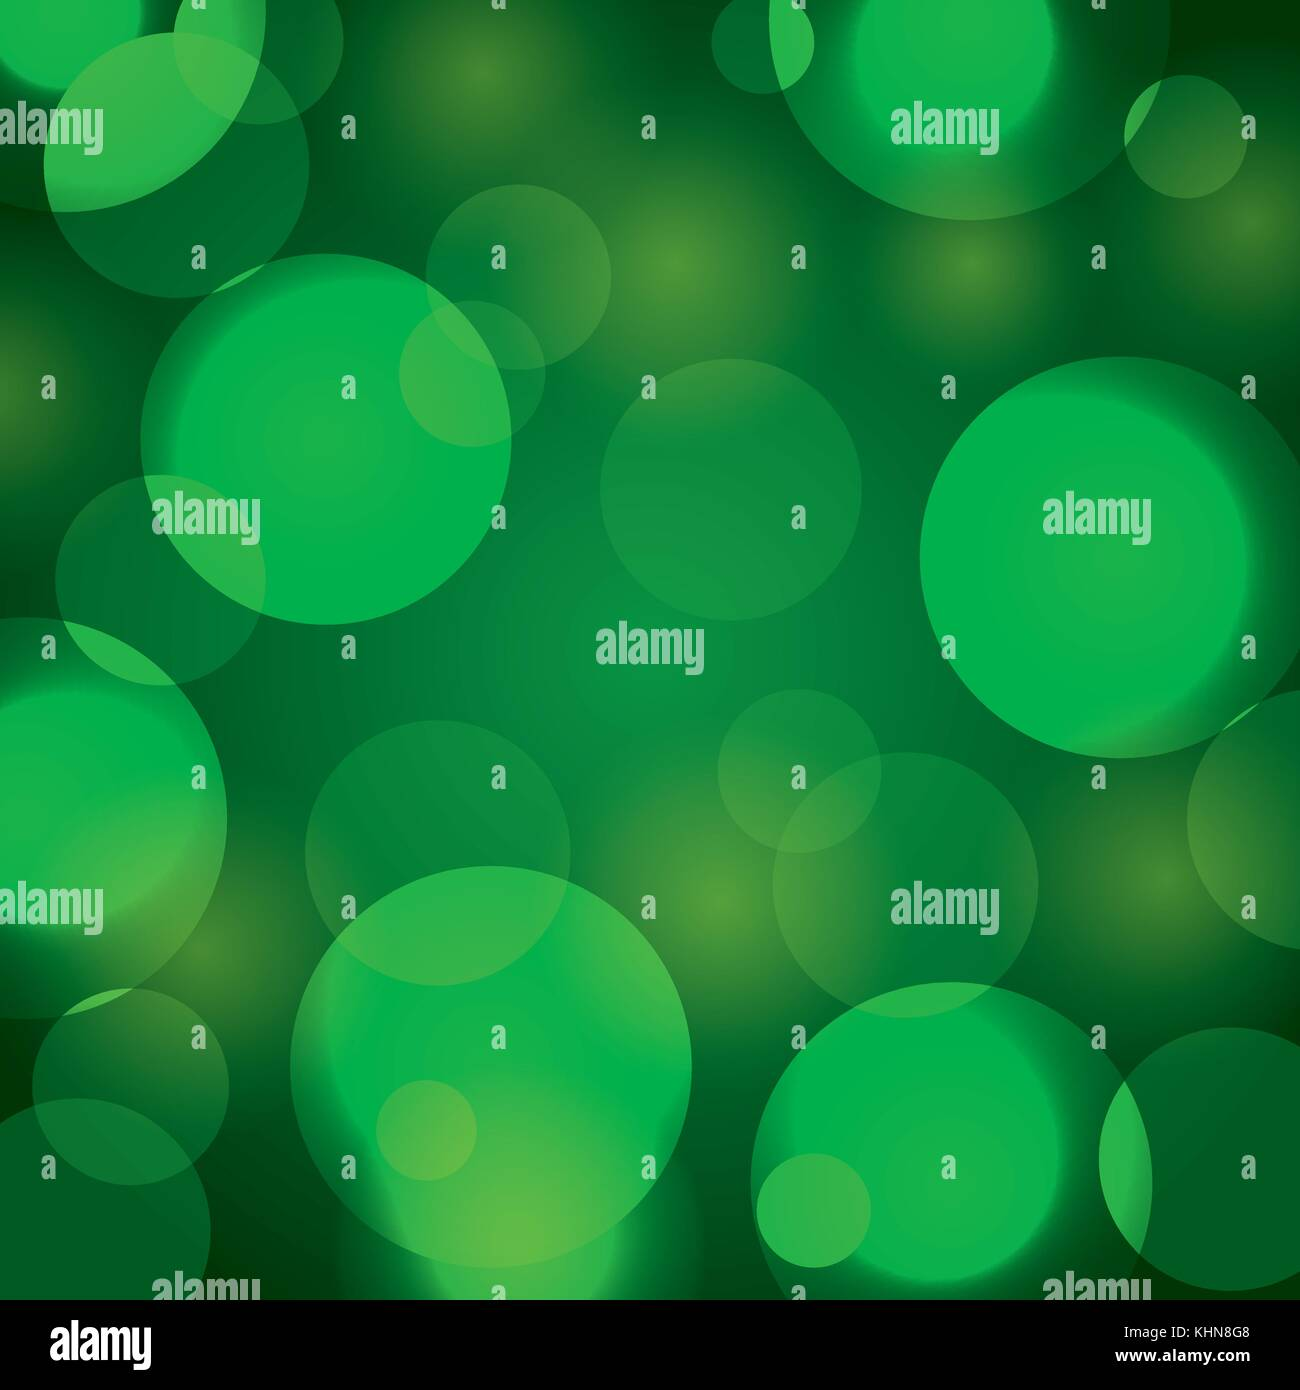 elegant christmas background with green abstract lights - Stock Image